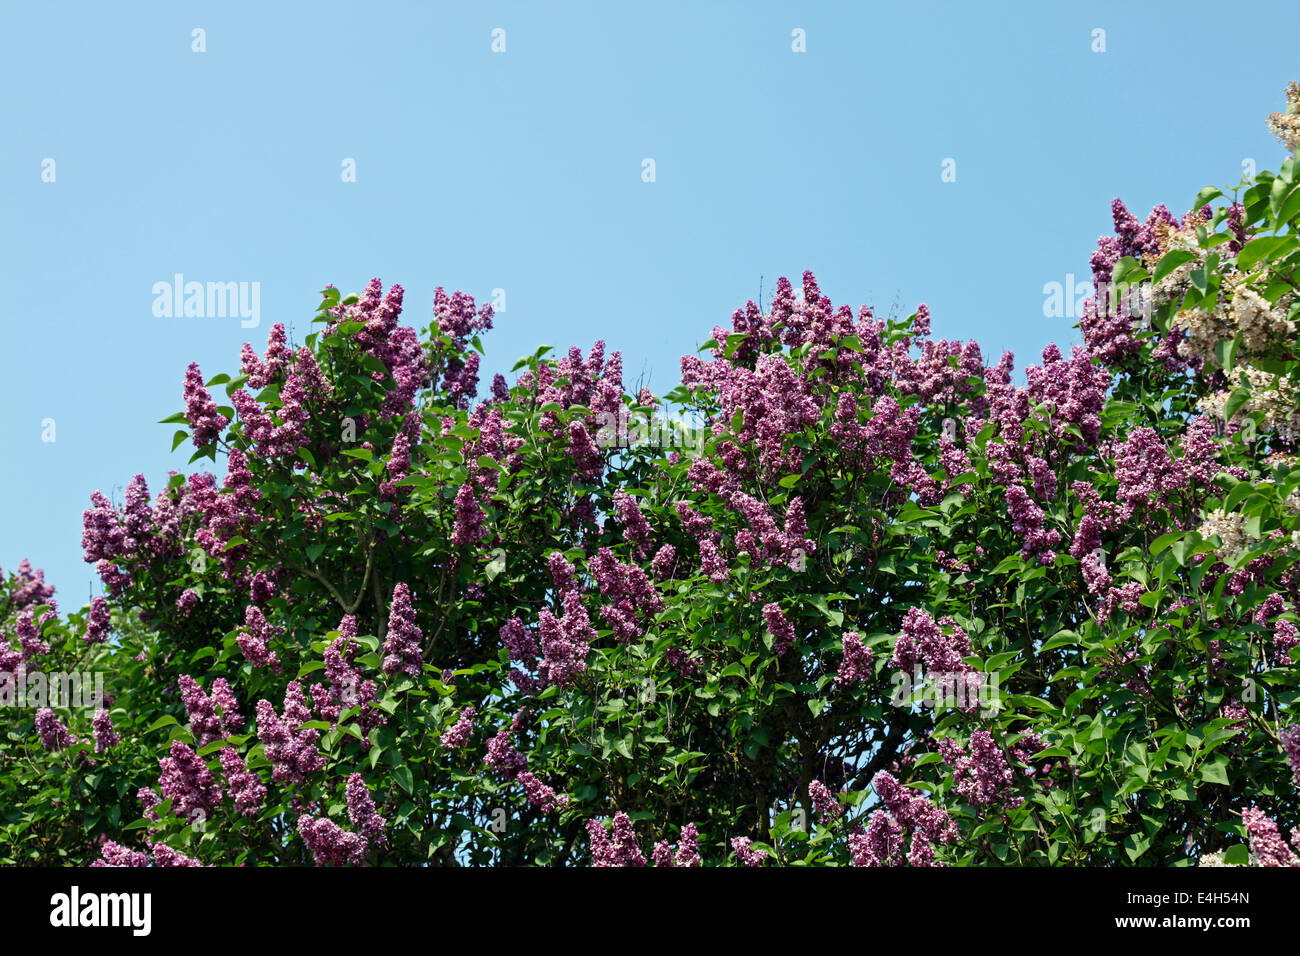 Butterfly Bush (Buddleia davidii), possibly 'Pink Delight', in full flower. - Stock Image